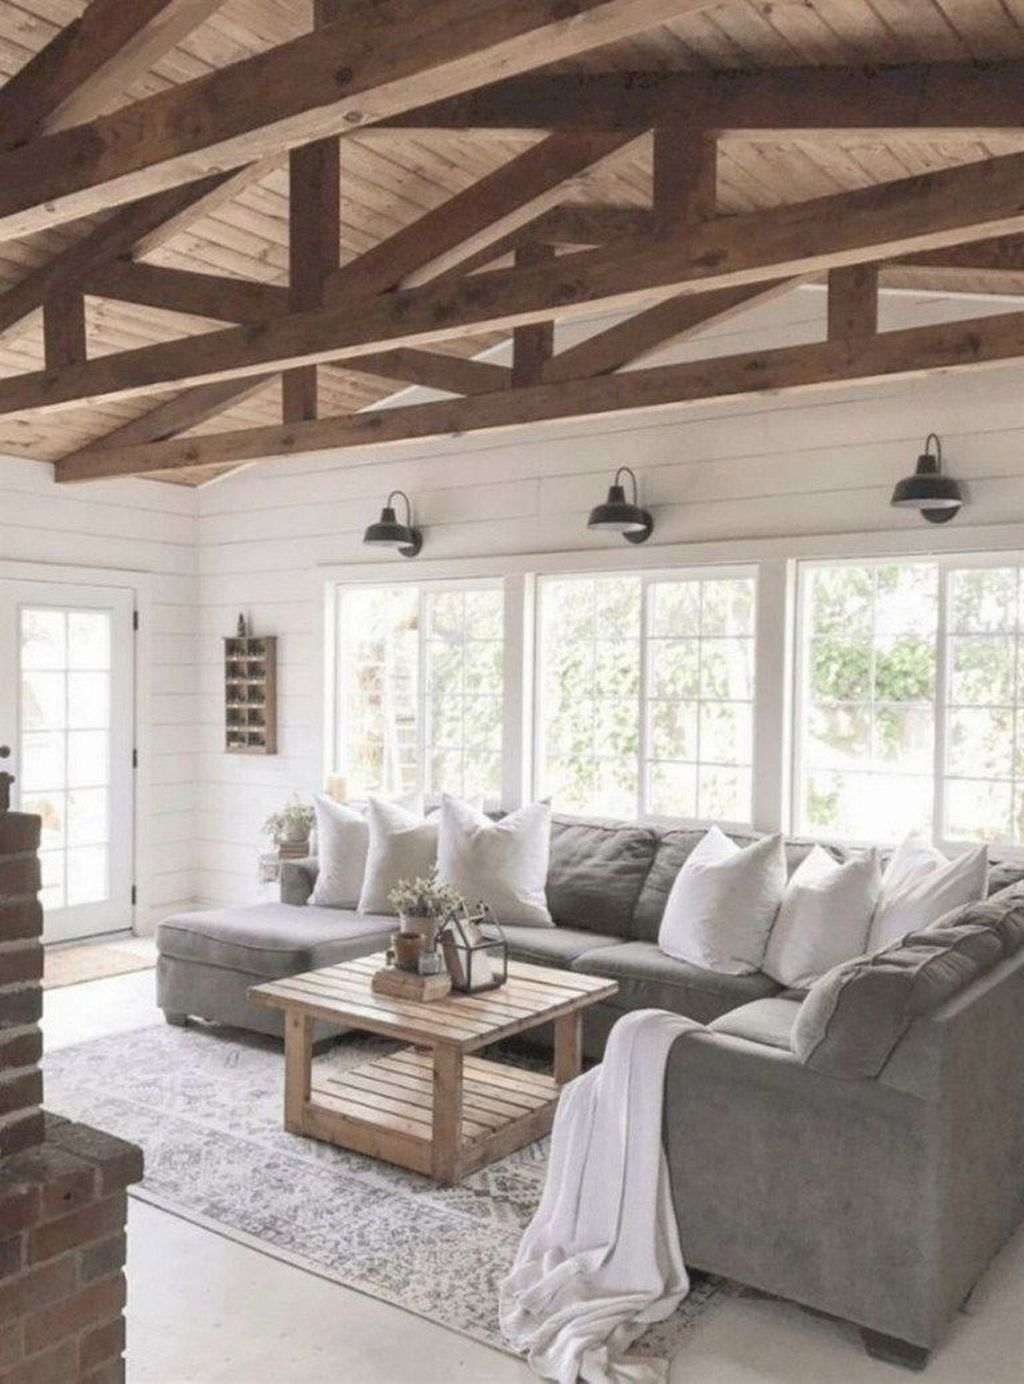 The Best Ideas To Decorate Interior Design With Farmhouse Style 09